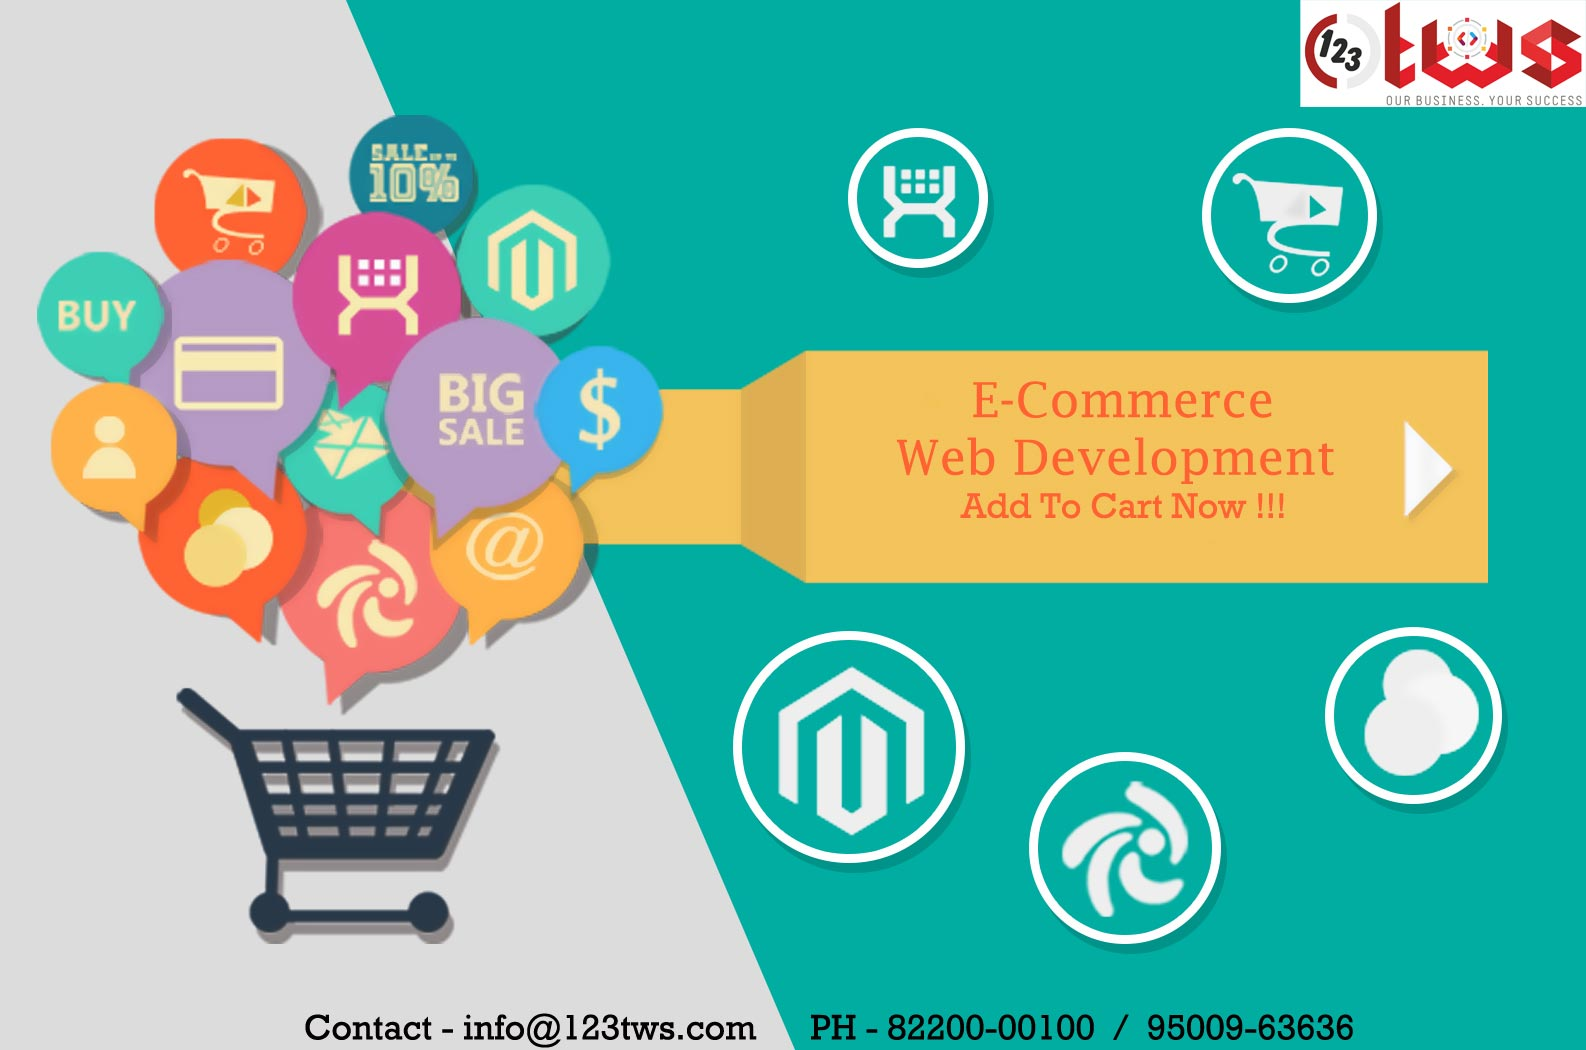 Knowing E-Commerce